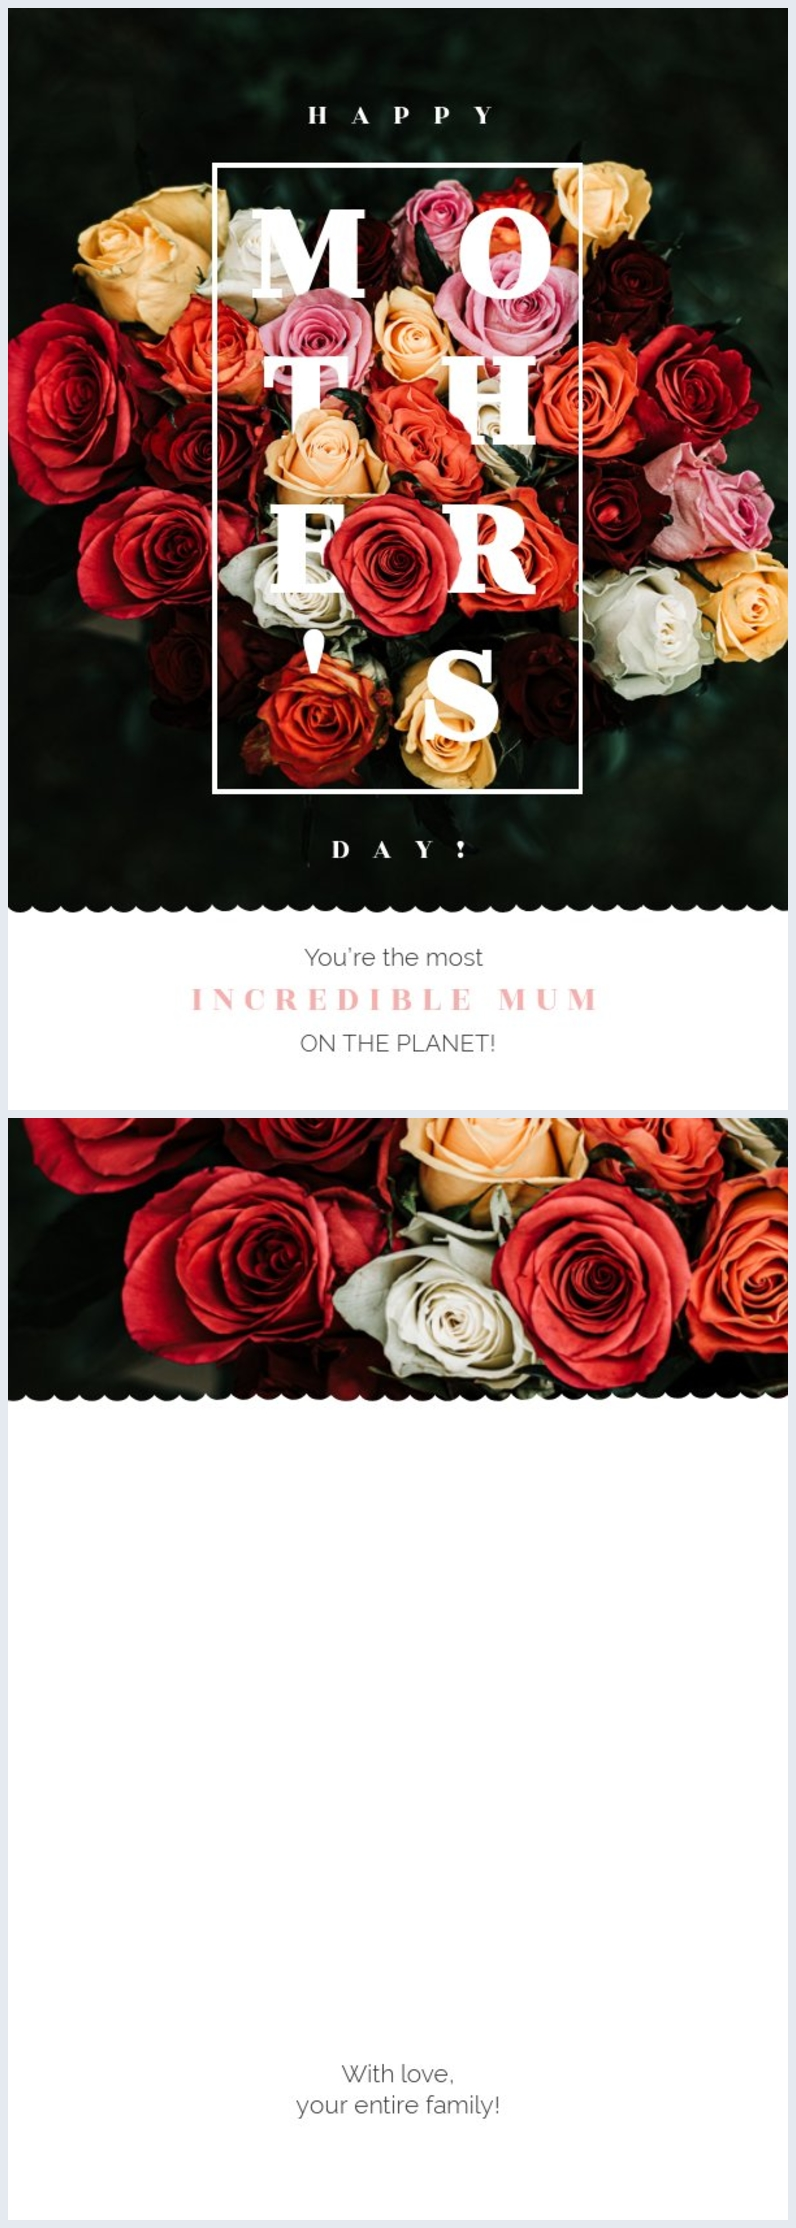 Colorful floral Mother's Day card example layout